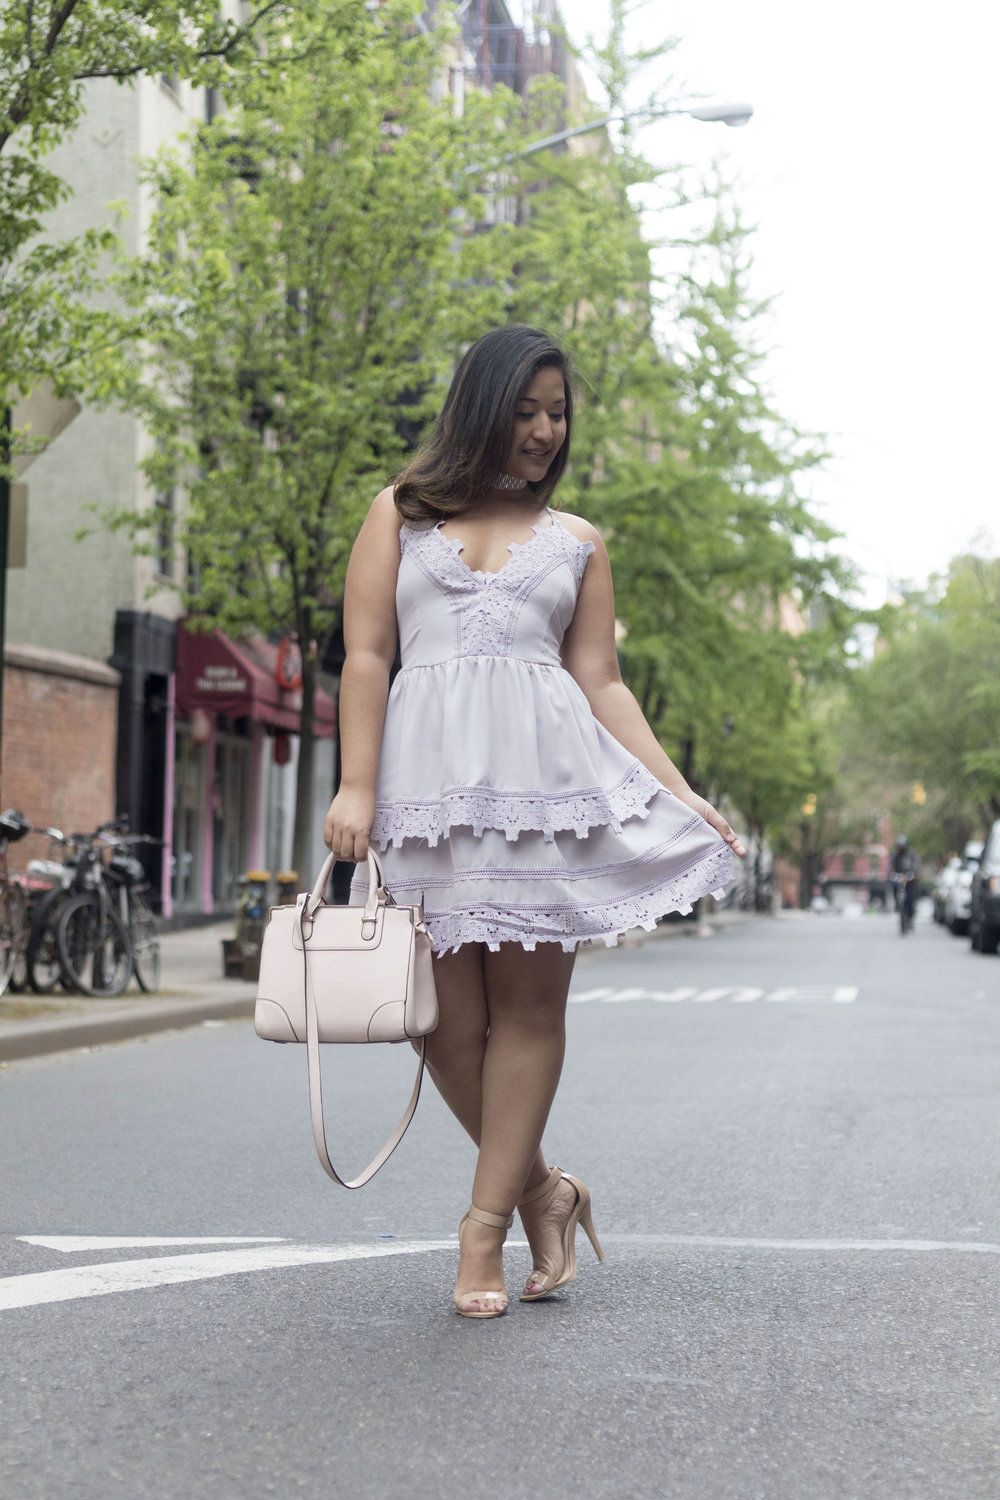 Krity S x Tobi x Lavender Lace Dress